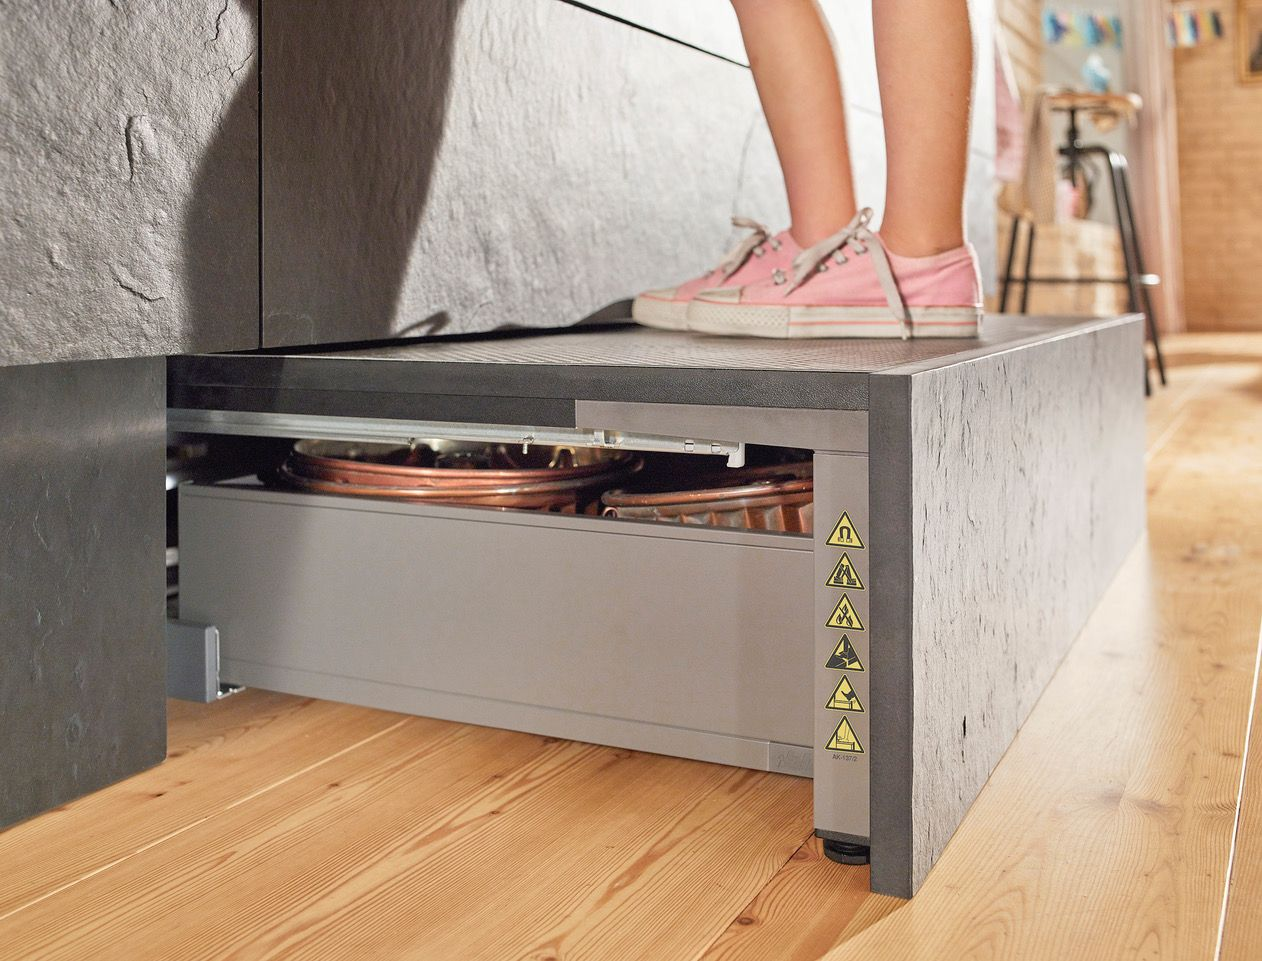 Space step delivers benefits to cabinet plinths in 2020 ...